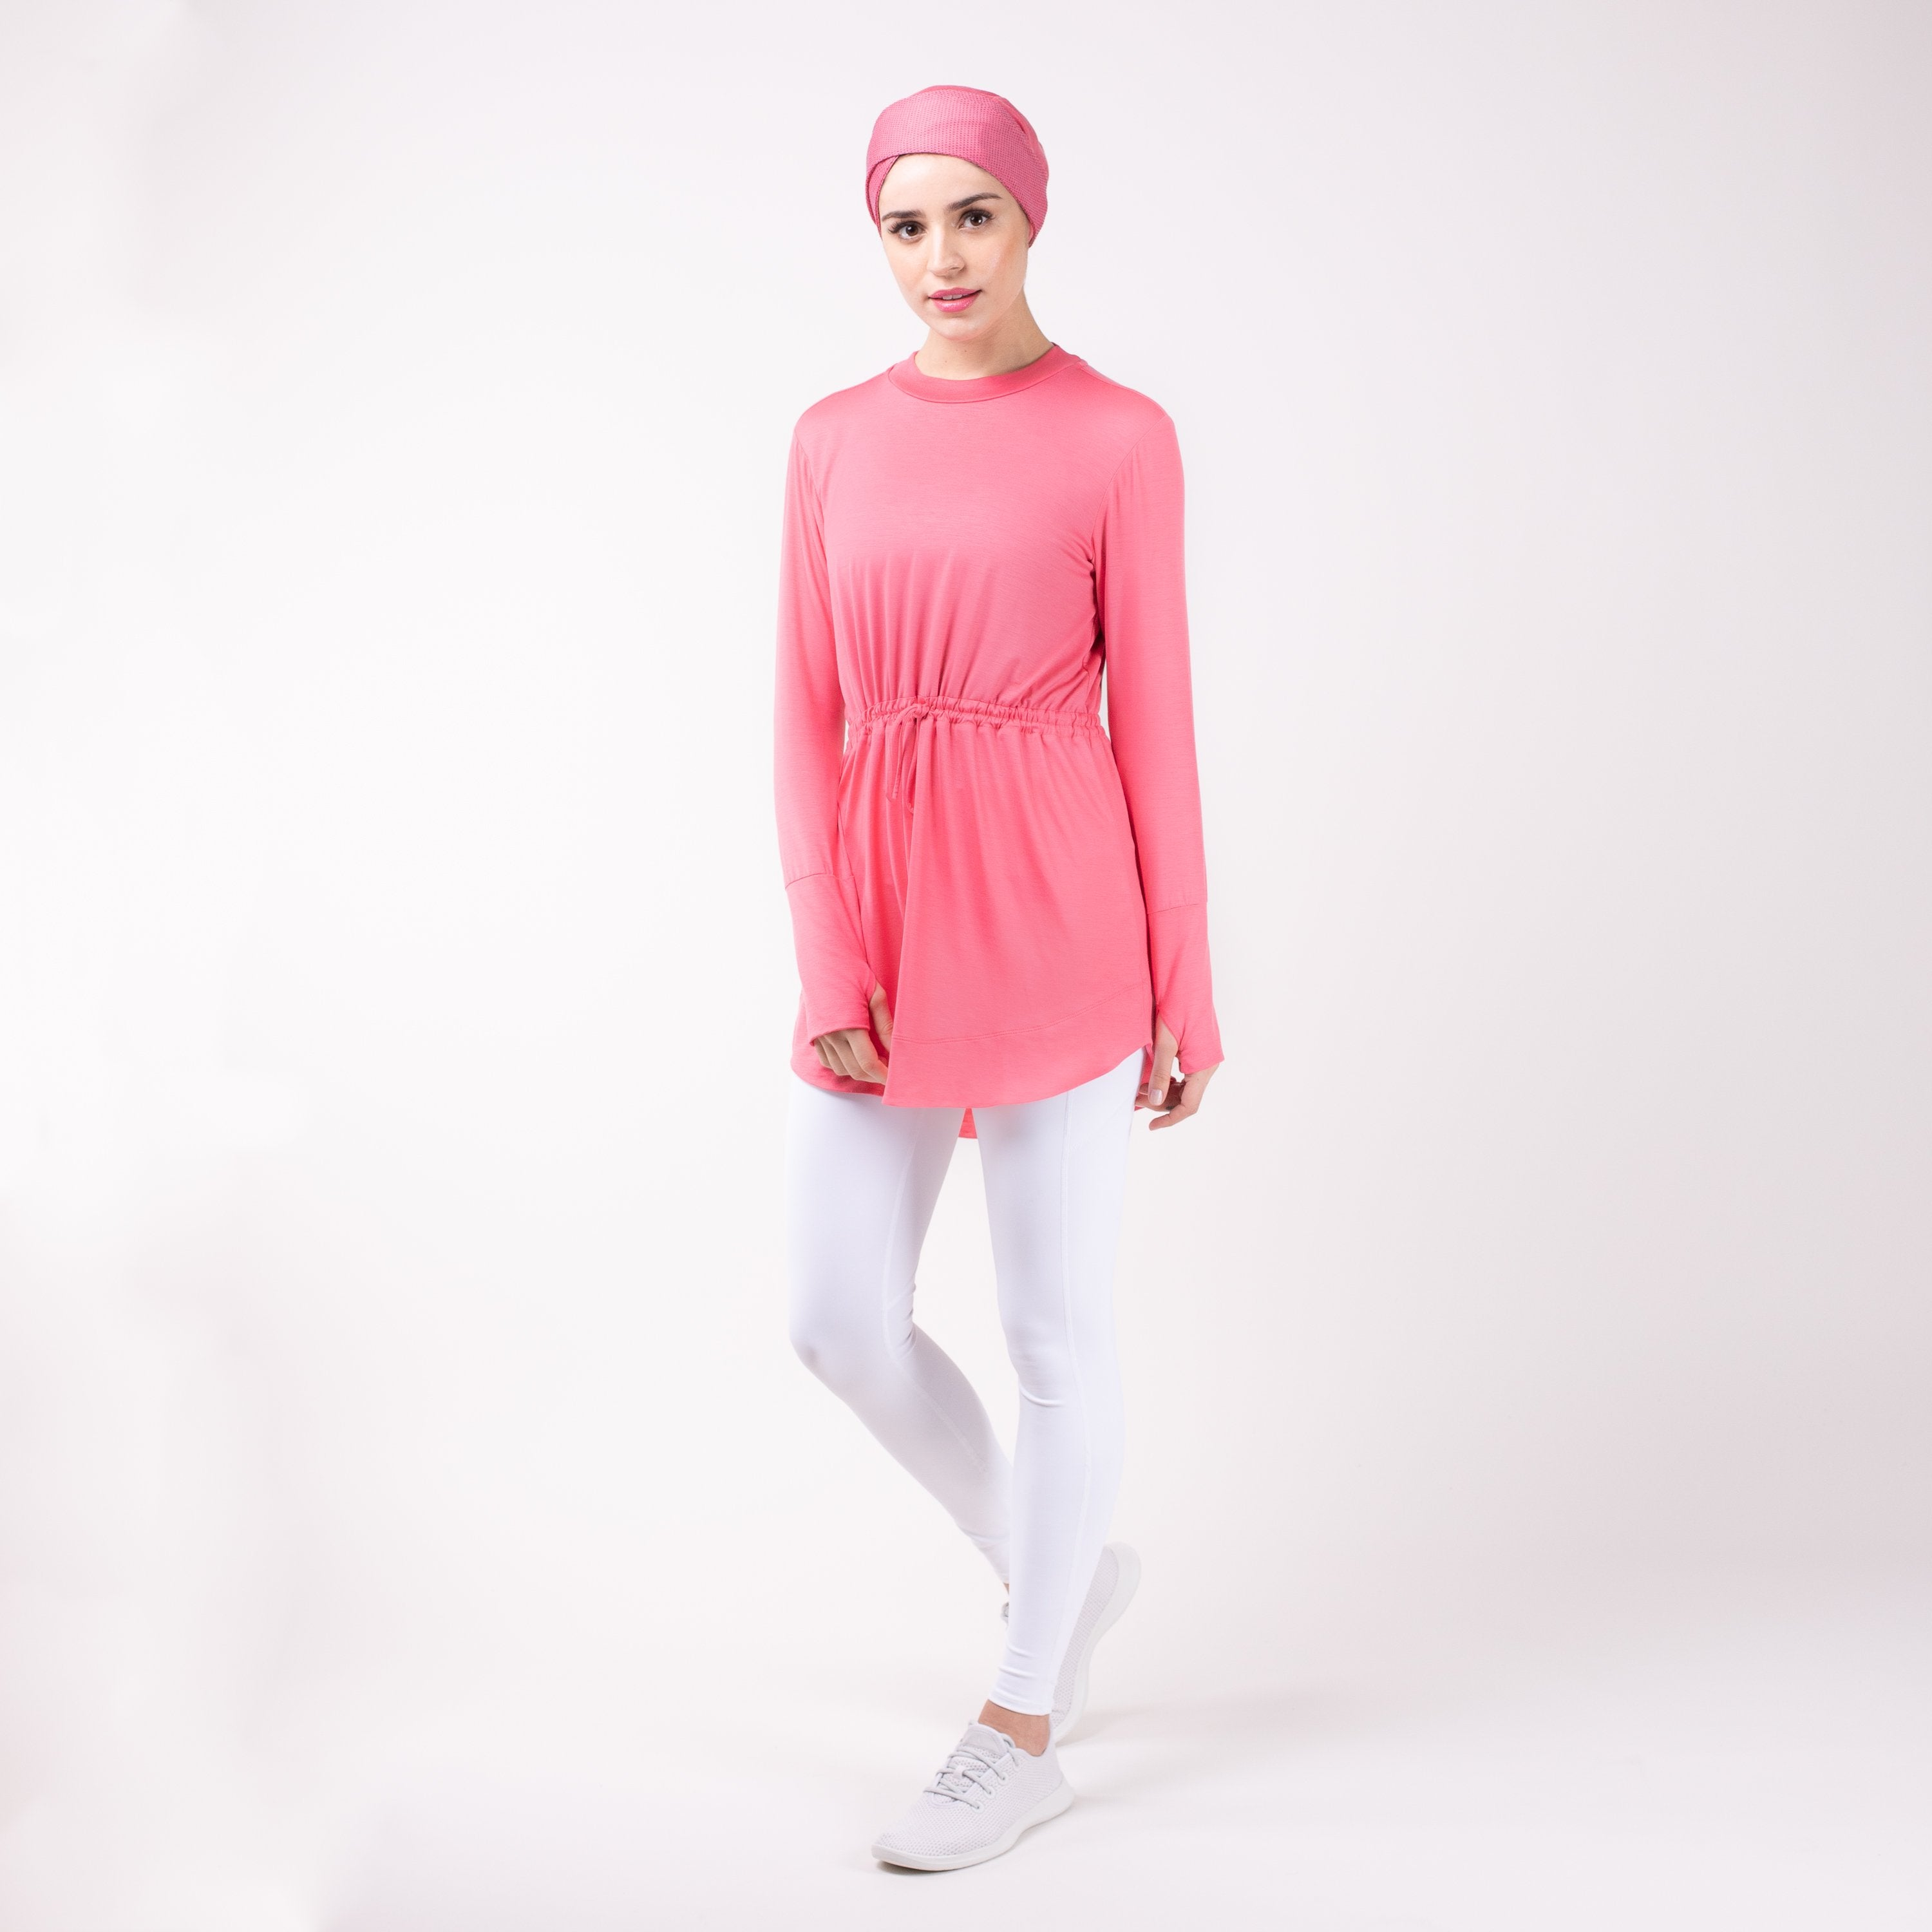 Woman standing with one leg bent wearing the modest, berry pink HAWA drawstring tee shirt and white leggings in front of a white back drop.